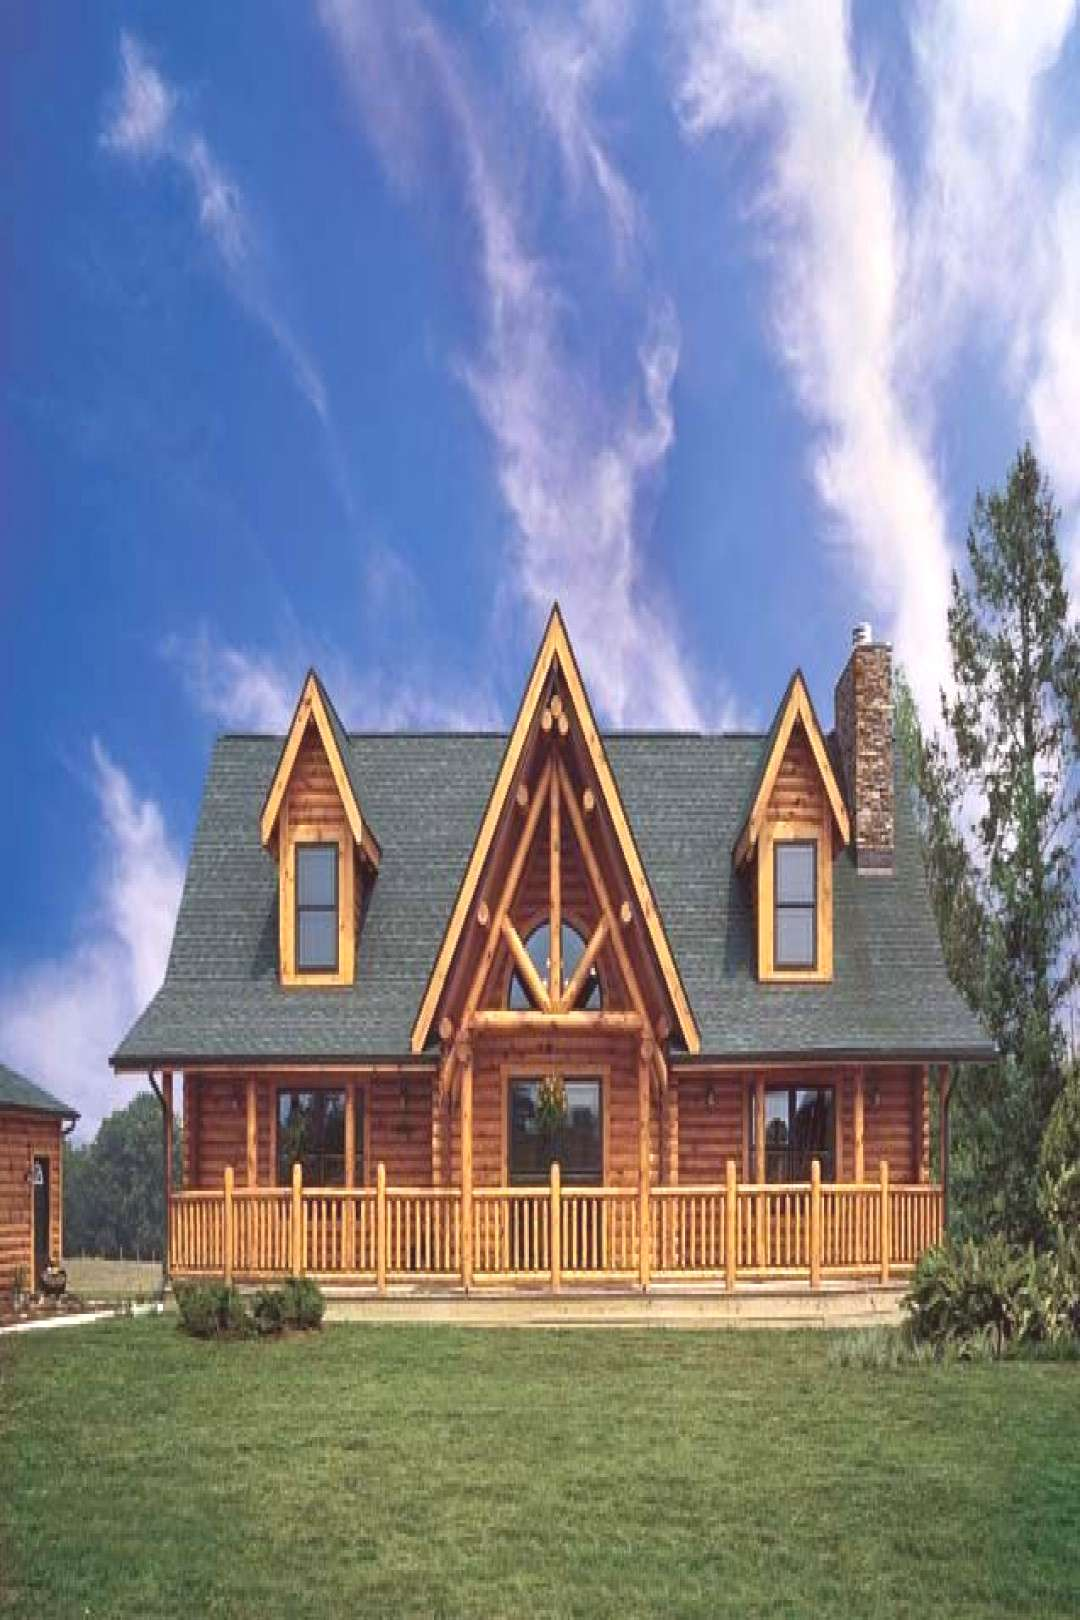 A Small Log Home in Western Rural Pennsylvania - The sizeable gabled front porch on the Benoits'